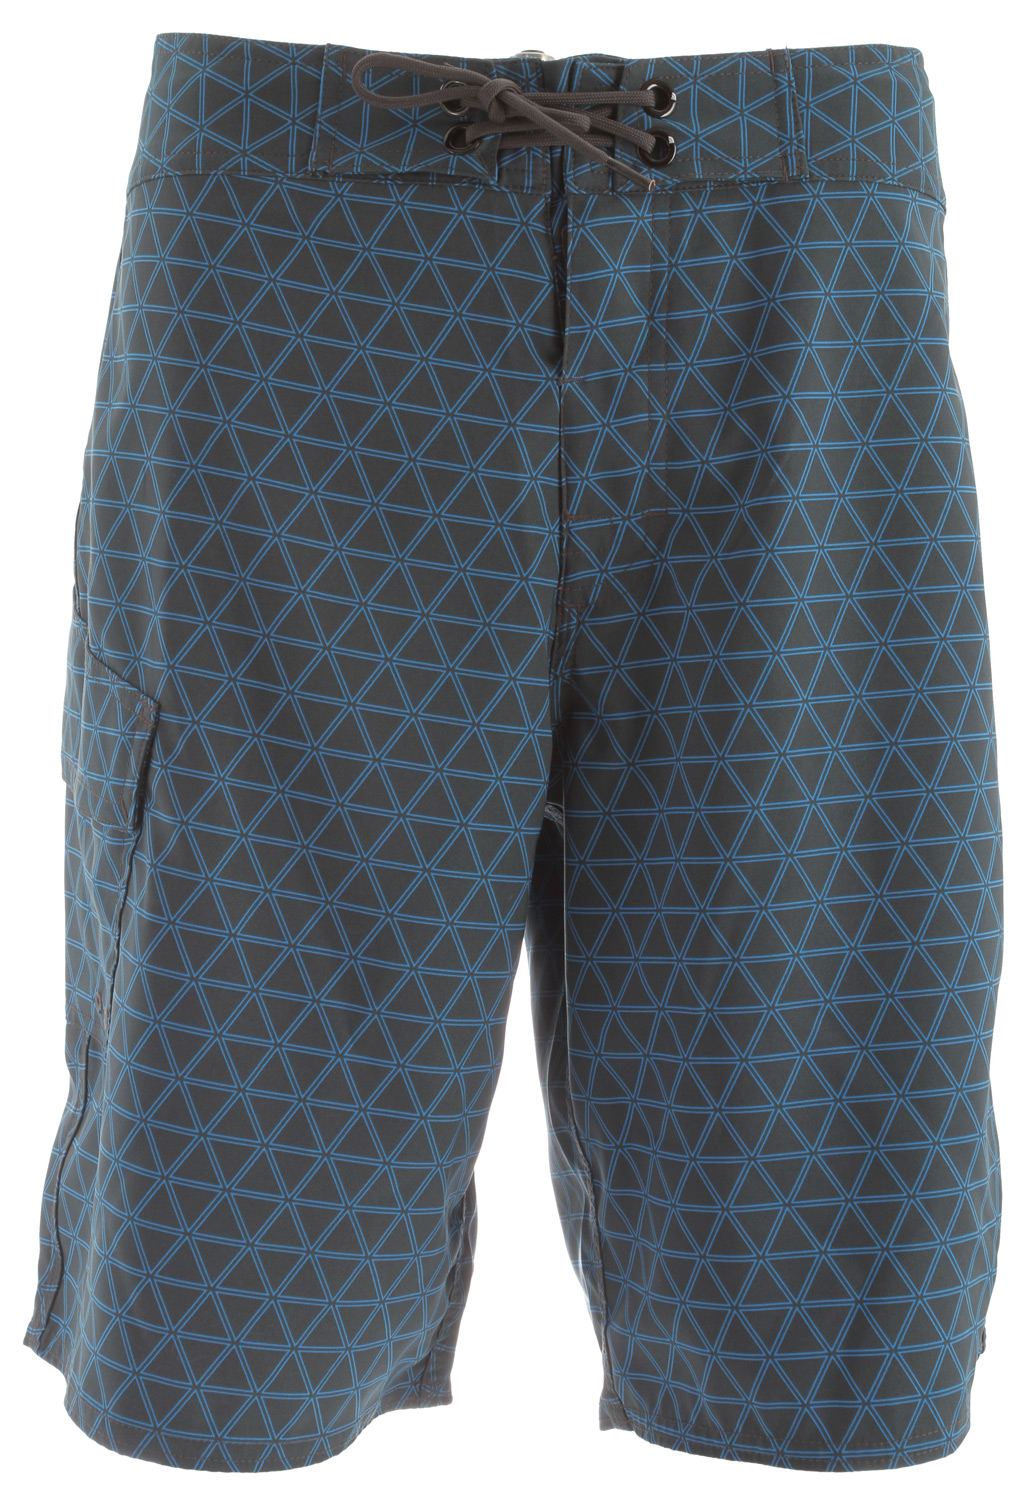 Surf Key Features of the The North Face Class V Stretch Printed Boardshorts: Fabric: 176 g/m2 100% polyester with mechanical stretch Lightweight, quick-drying, abrasion resistant Ultraviolet protection factor (UPF) 50 Boardshort waist tie with fly gusset Side utility pocket - $38.95